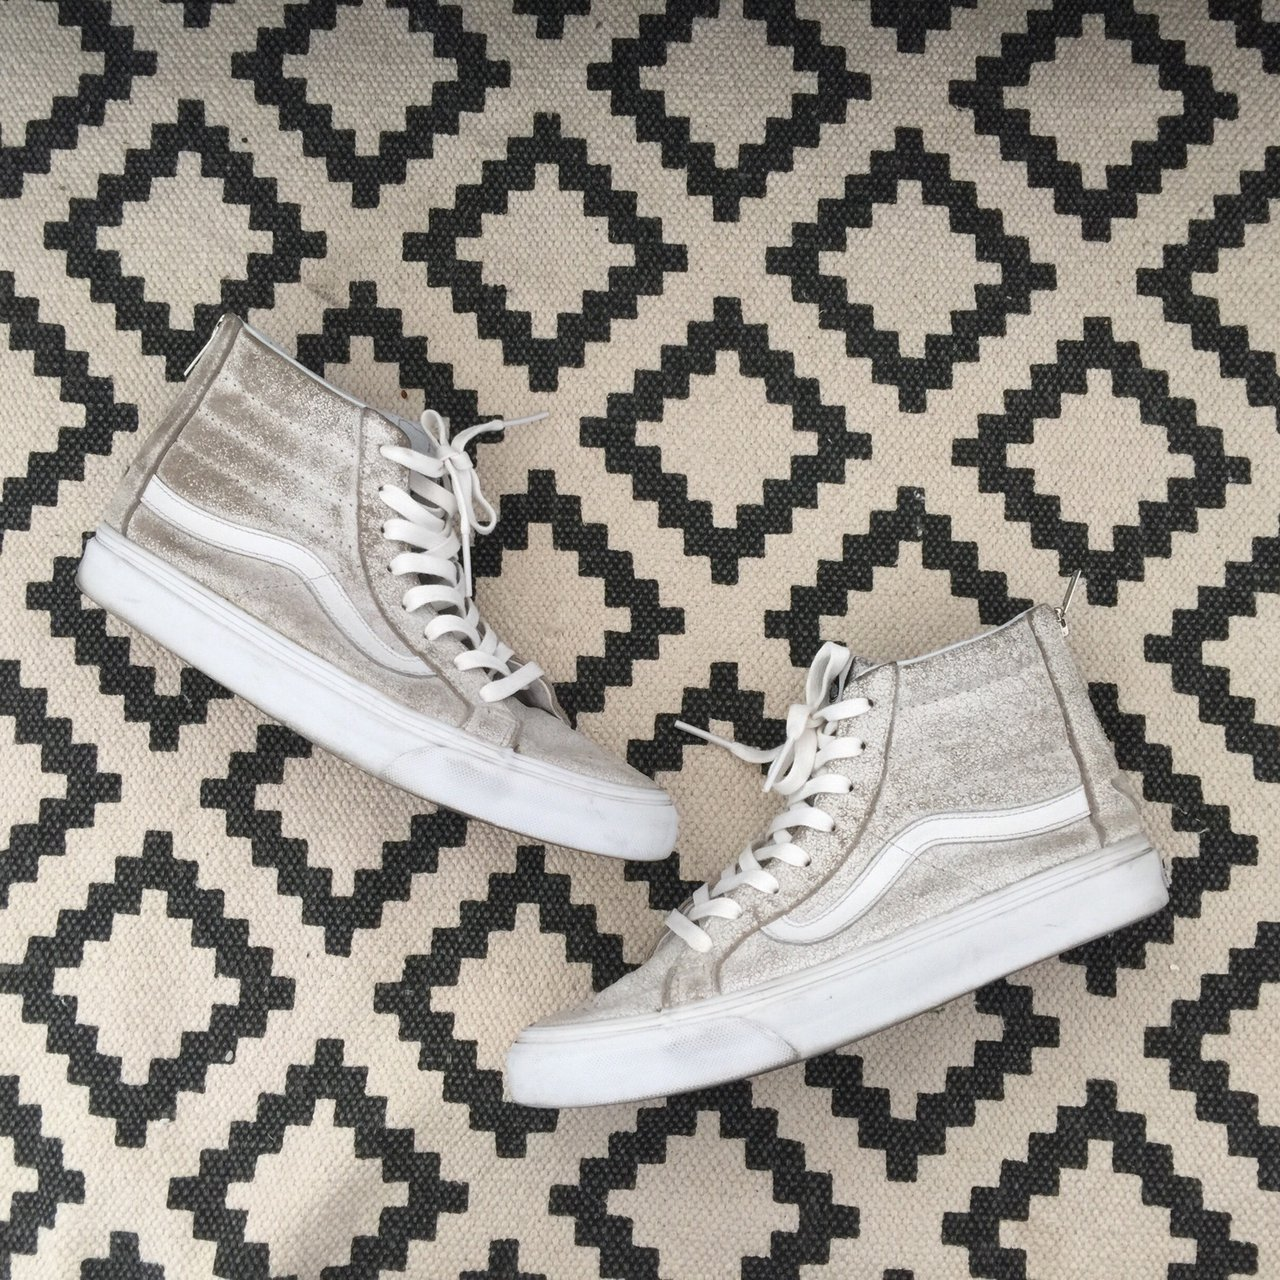 f4f2aed39b Vans Sk8 Hi cracked leather sneakers shoes in white. Size of - Depop